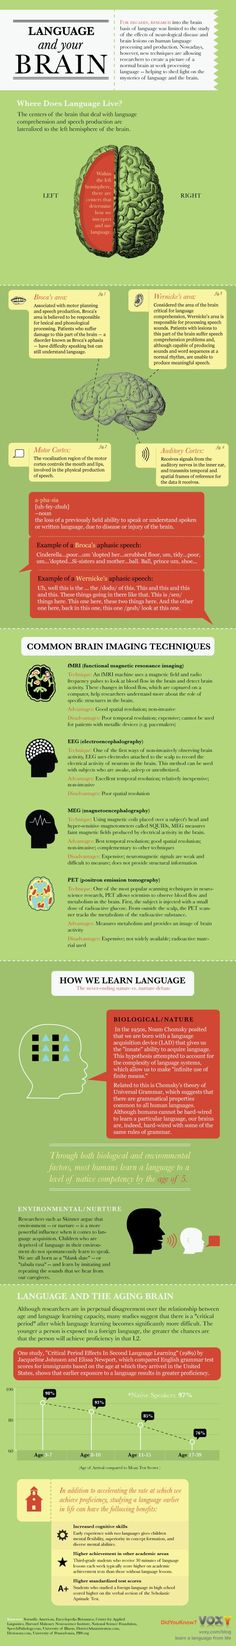 Infographic: Language and Your Brain - explains aphasia that can occur from a stroke or other brain injury. #brain injury